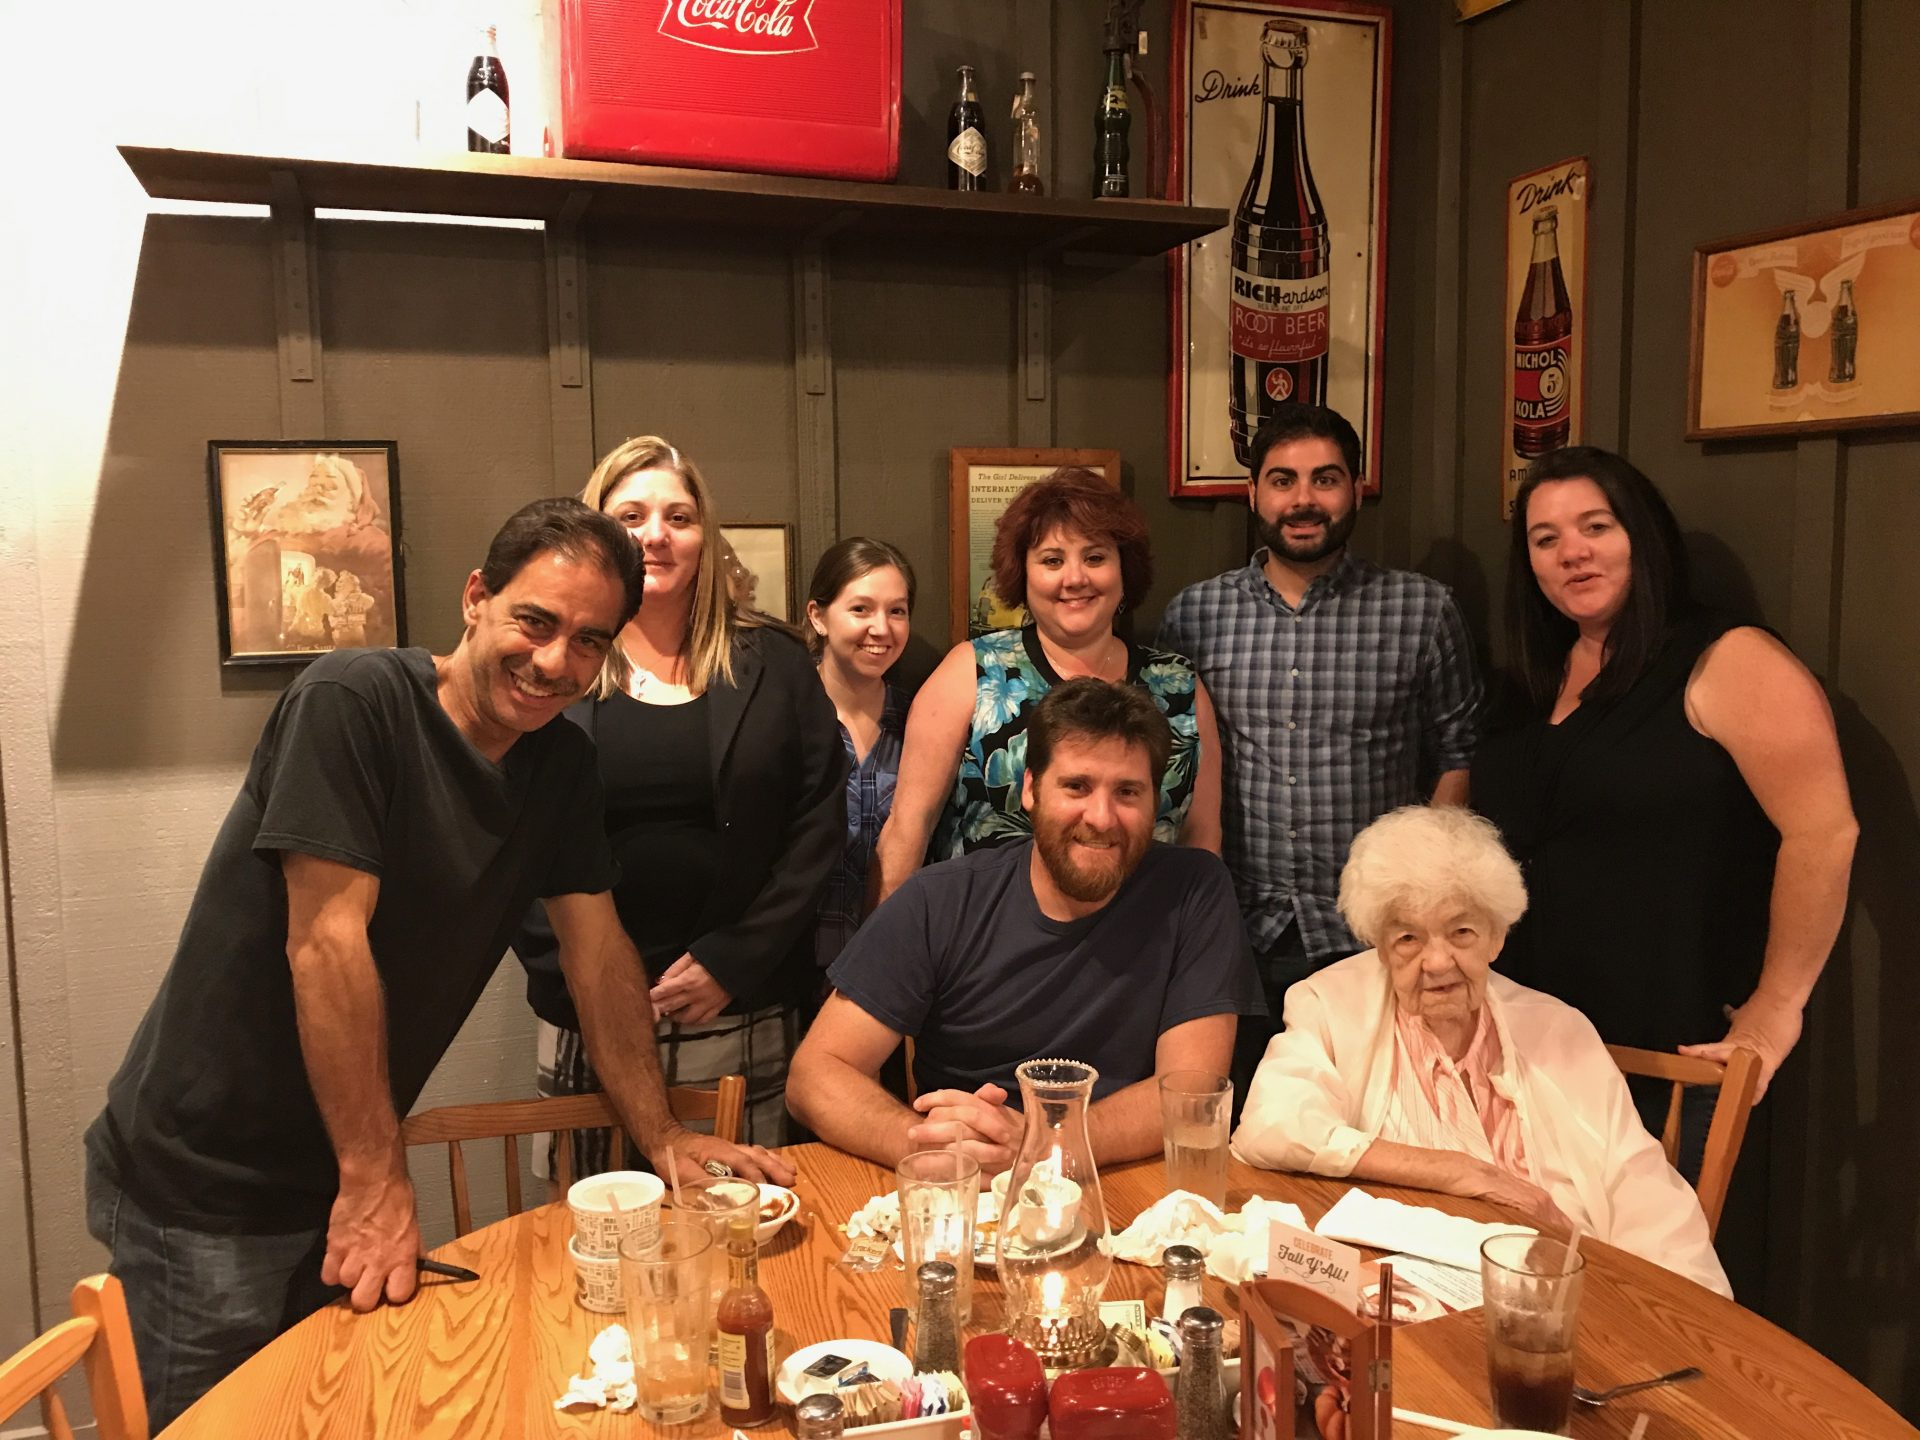 dinner with Grandma before she moved to Florida